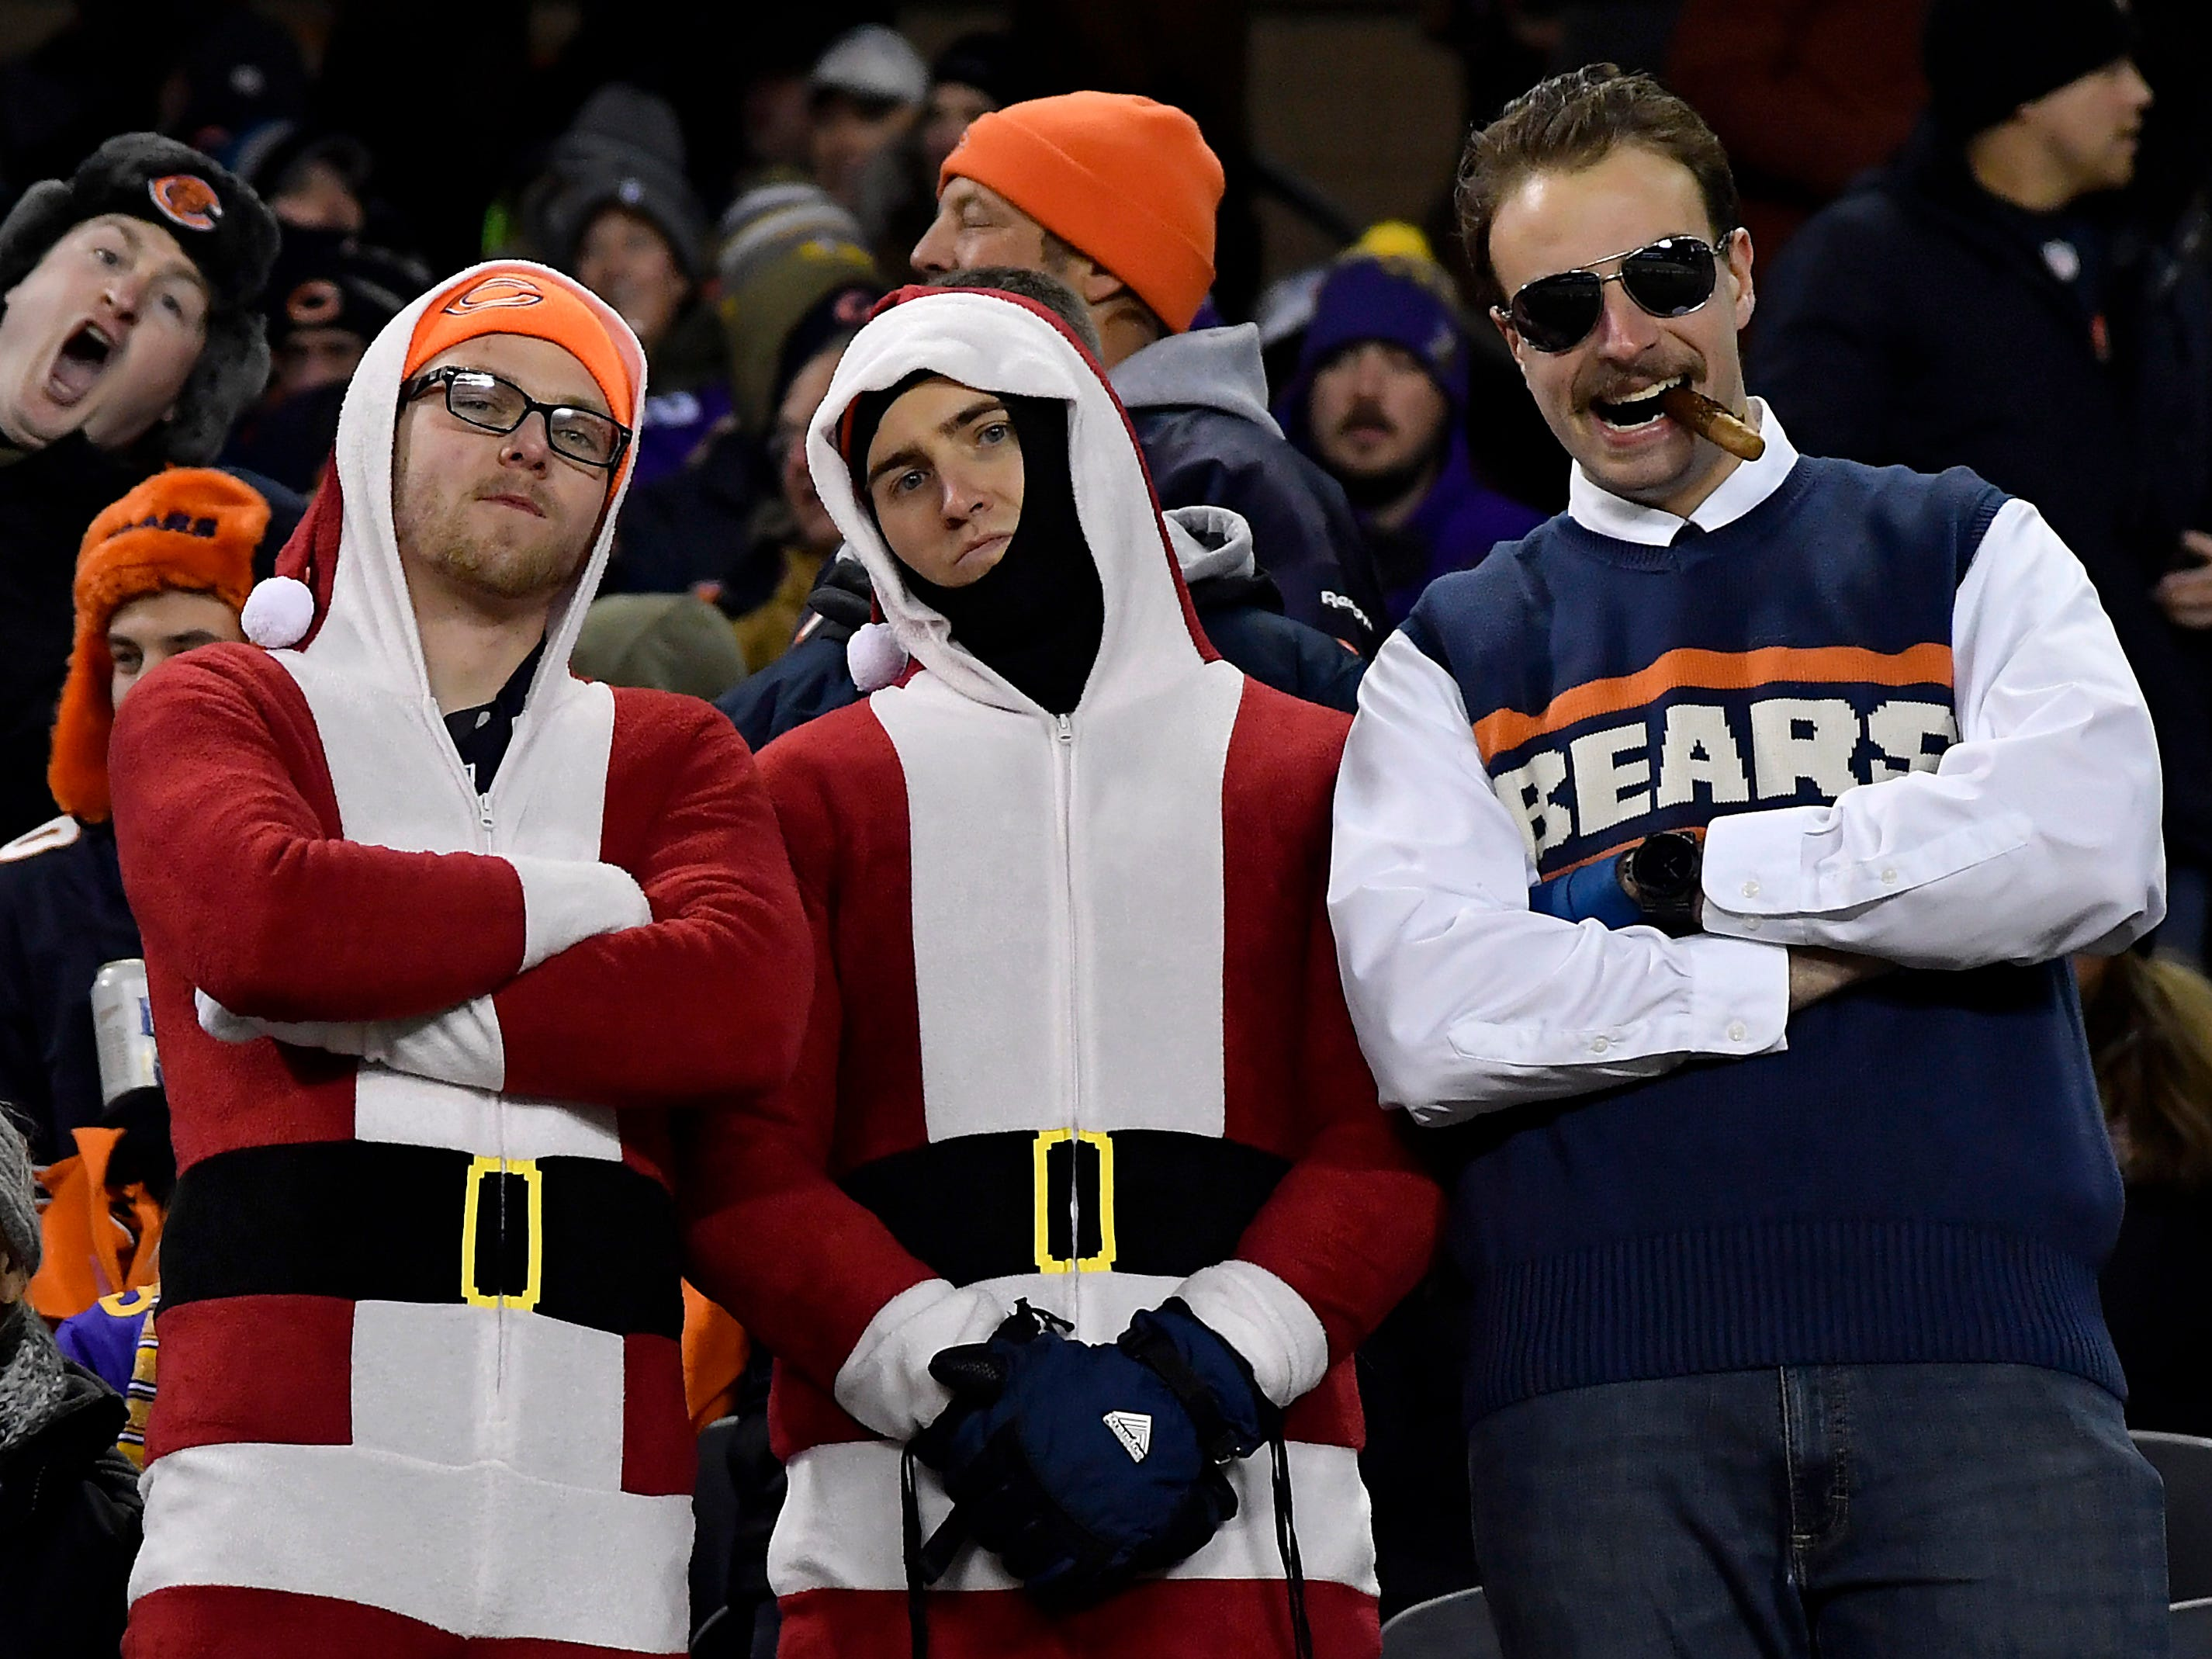 Chicago Bears fans during the game against the Minnesota Vikings at Soldier Field.